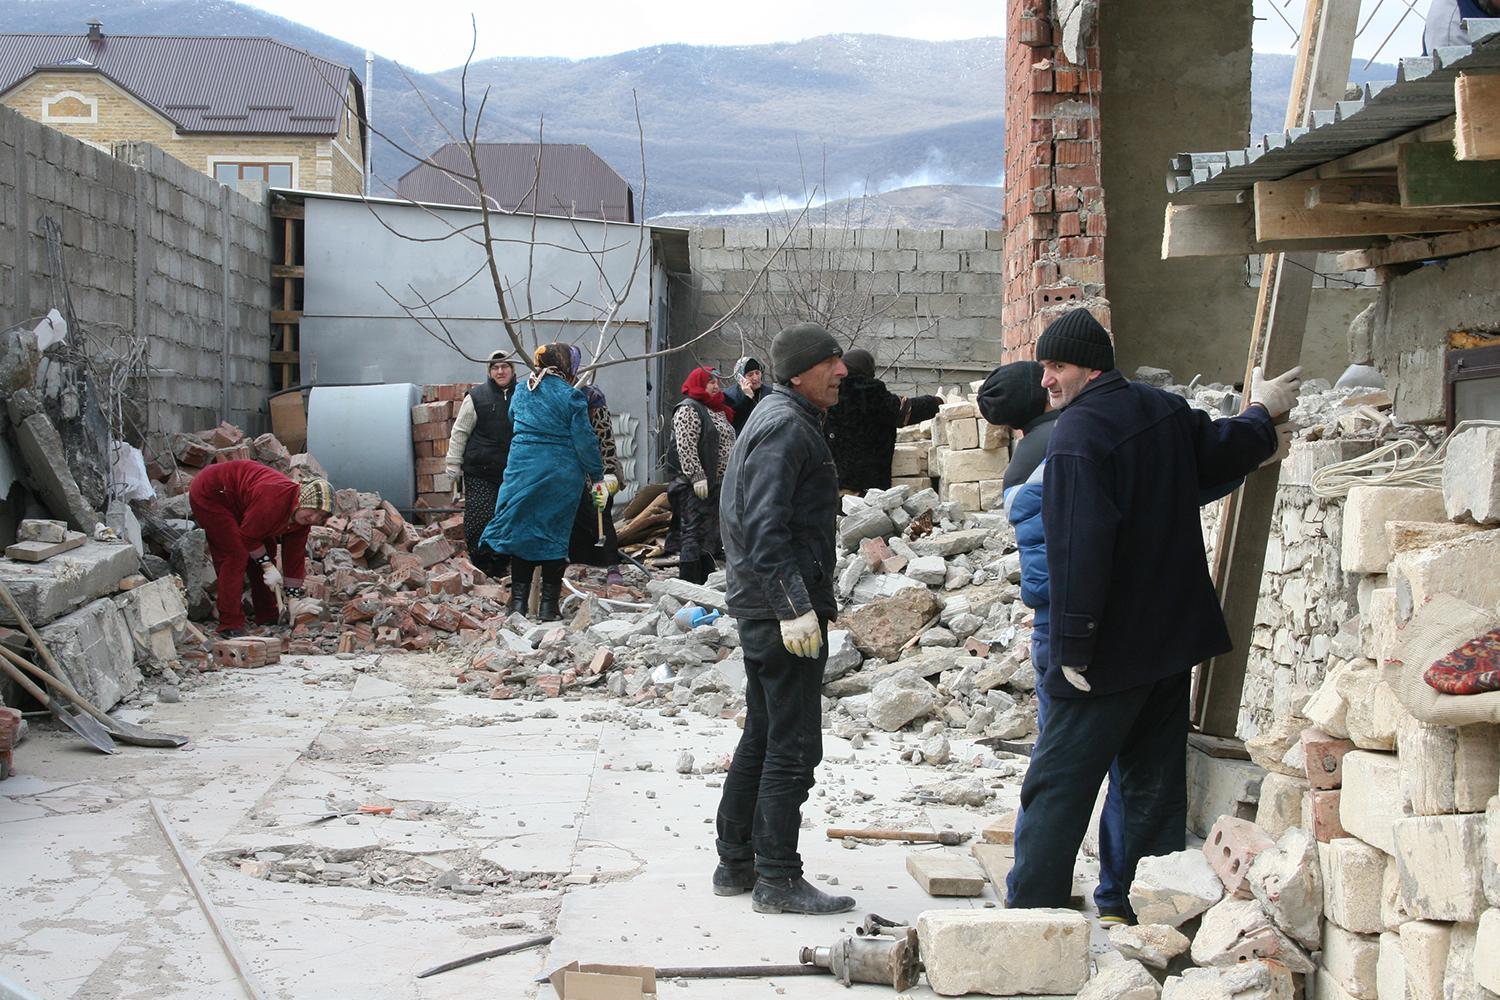 Quote for the Week. Tanya Lokshina: 'Justice is finally coming to the small, remote village of Vremenny in Dagestan'